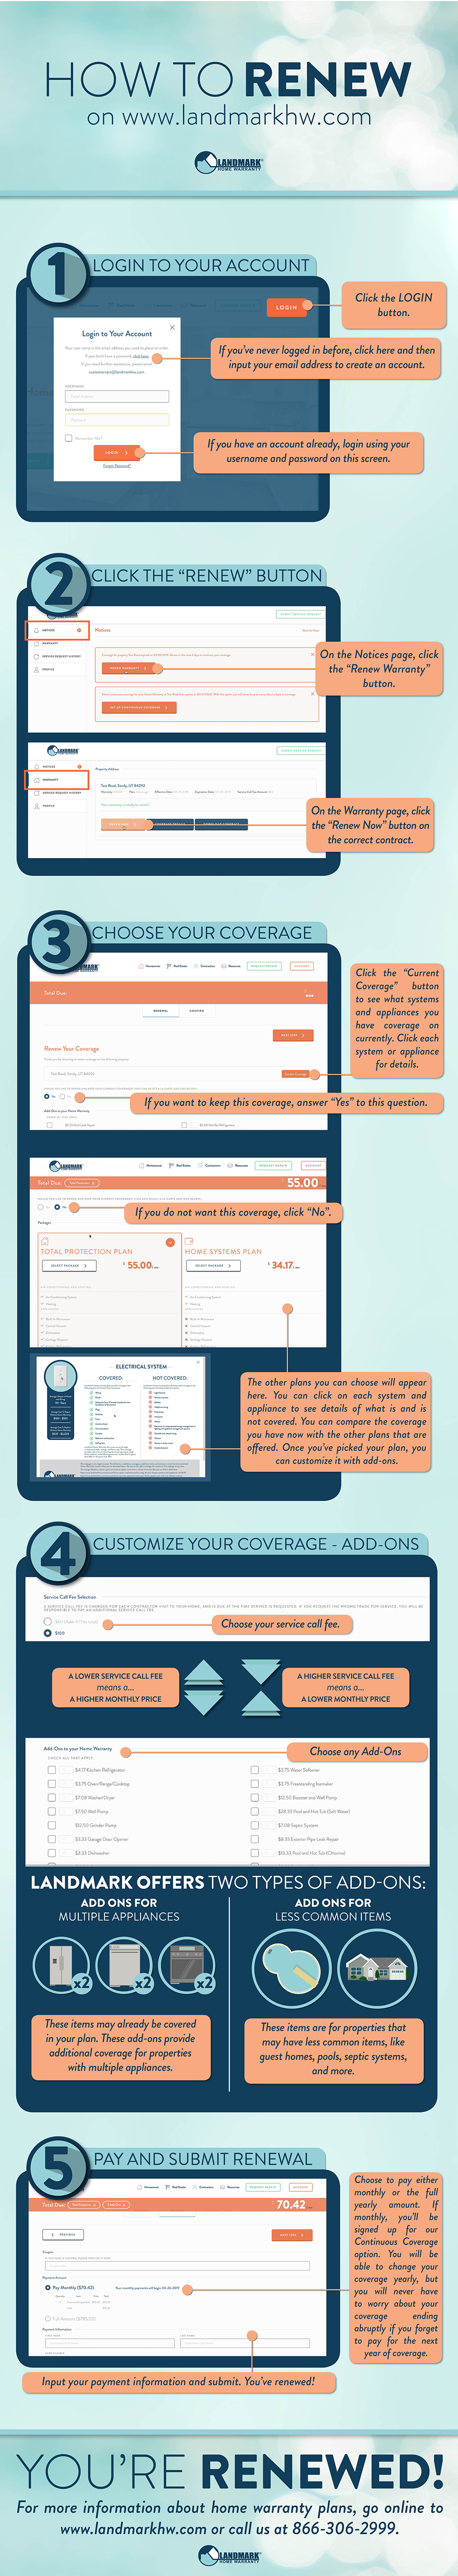 How to renew your home warranty coverage with Landmark Home Warranty full infographic.